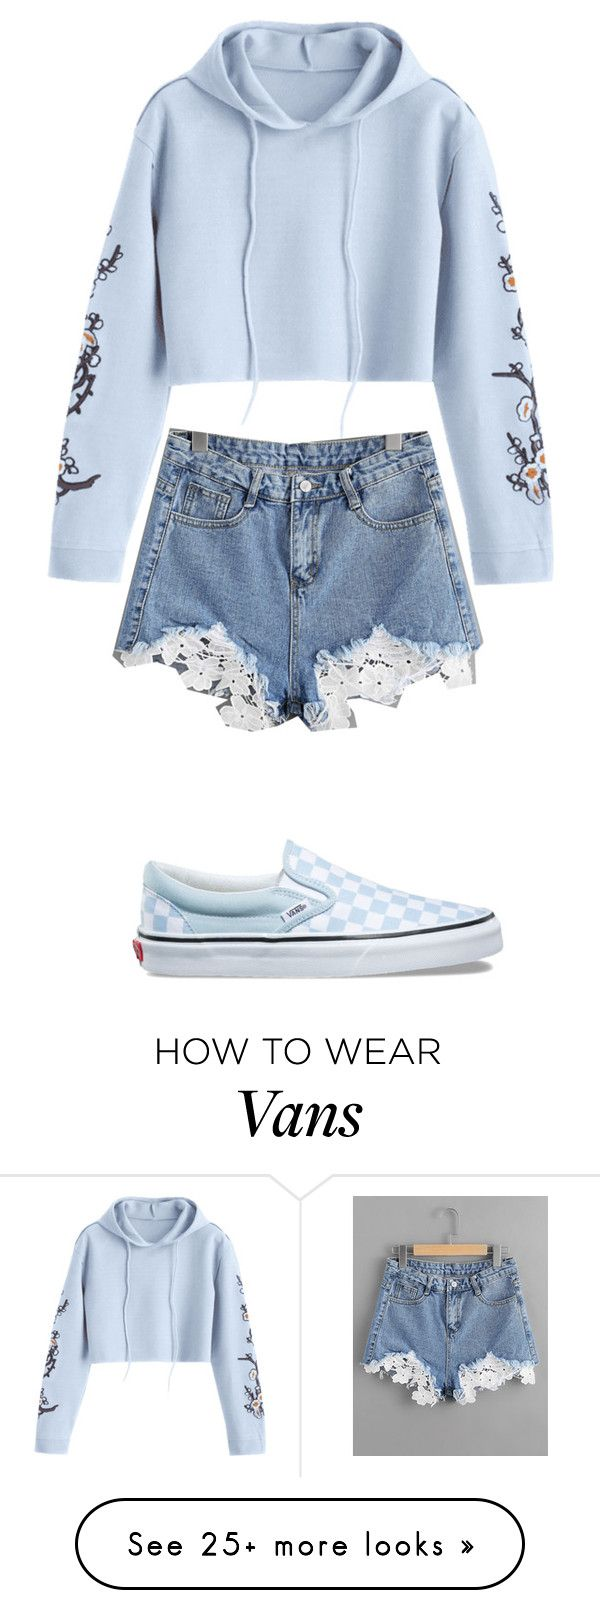 """Summer nights"" by grimmjulz on Polyvore featuring Vans and Hoodies"